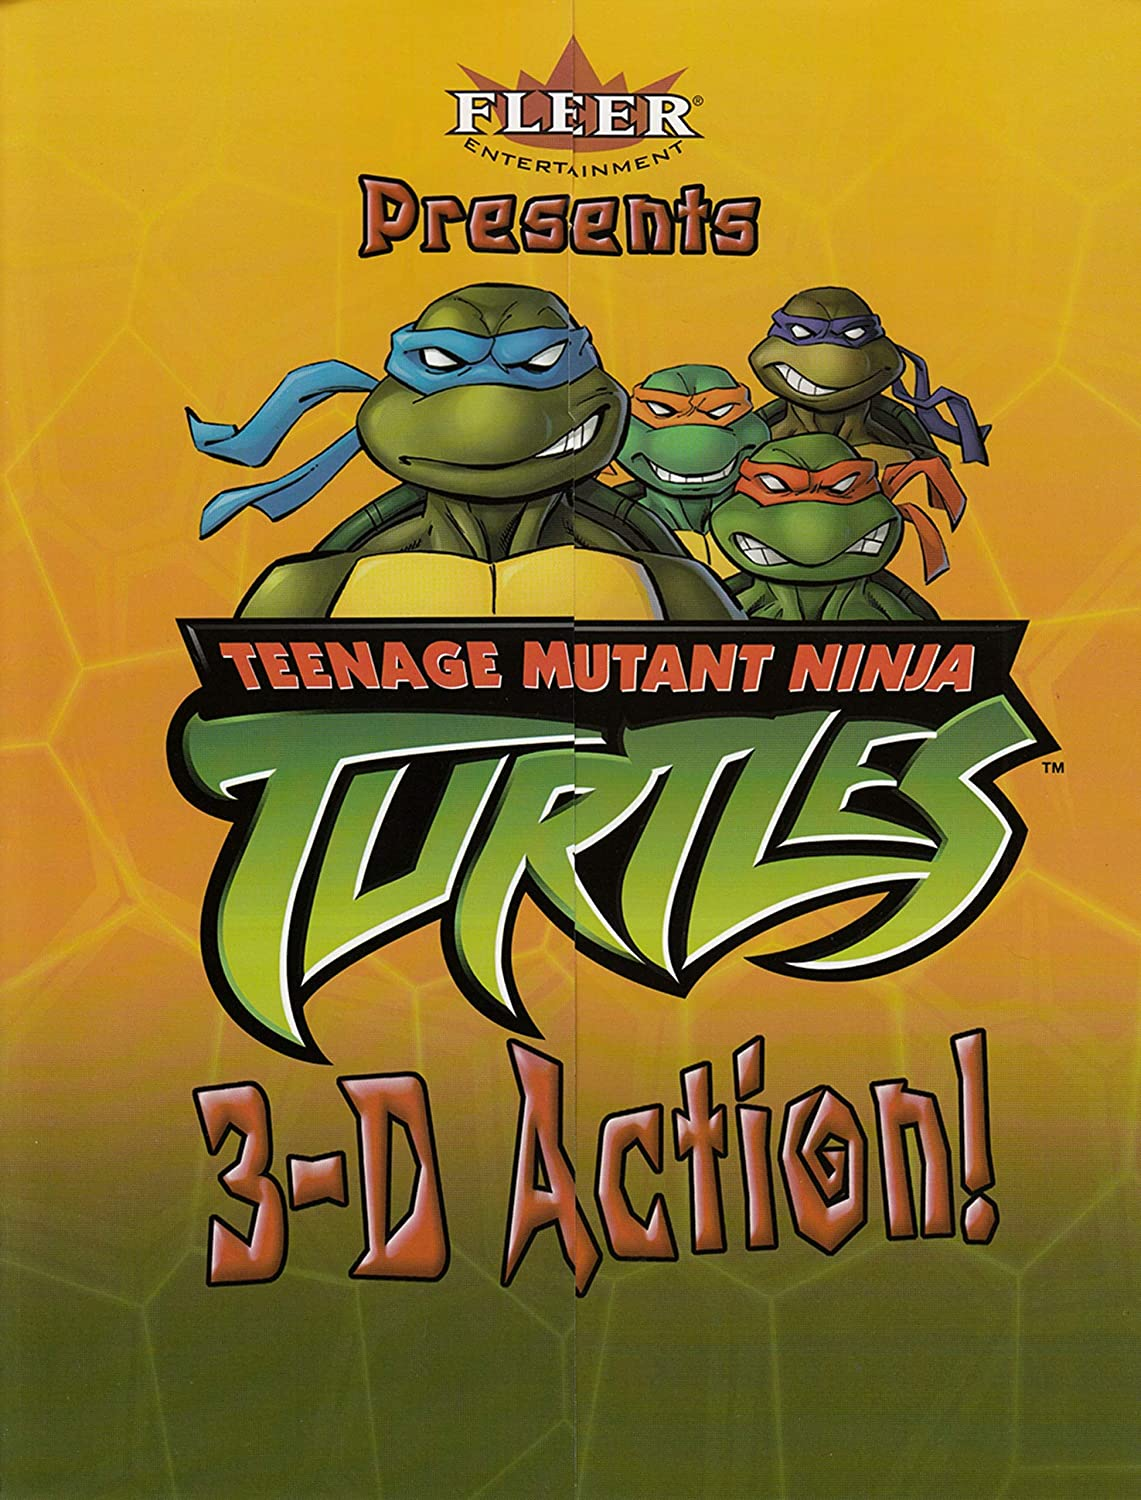 TEENAGE MUTANT NINJA TURTLES 3-D ACTION FLEER TRI-FOLD ...